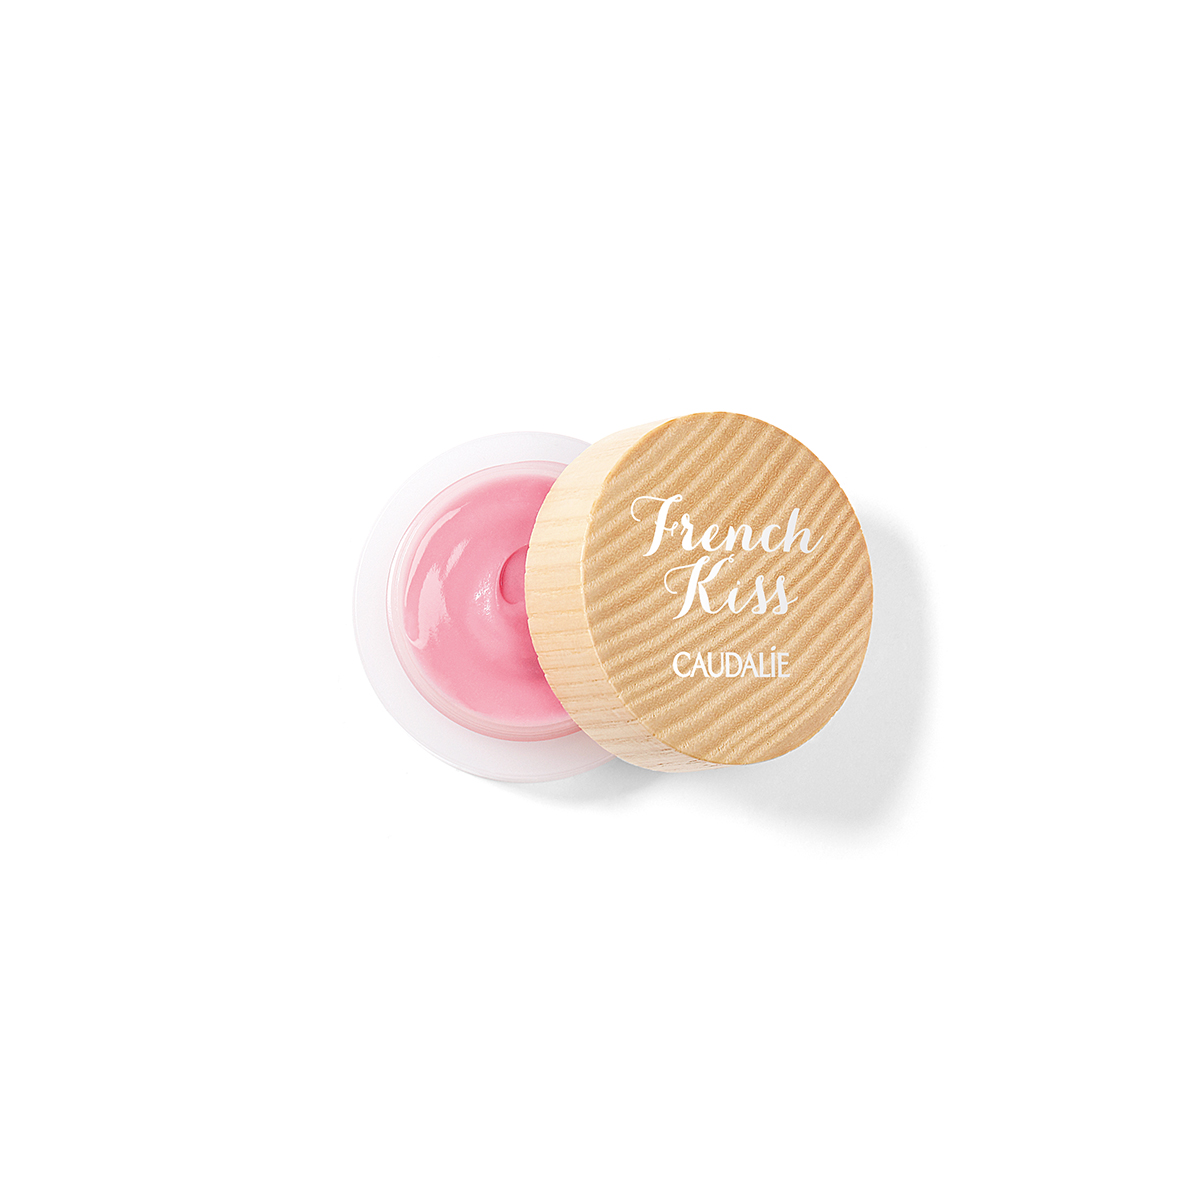 French Kiss Tinted Lip Balm Innocence